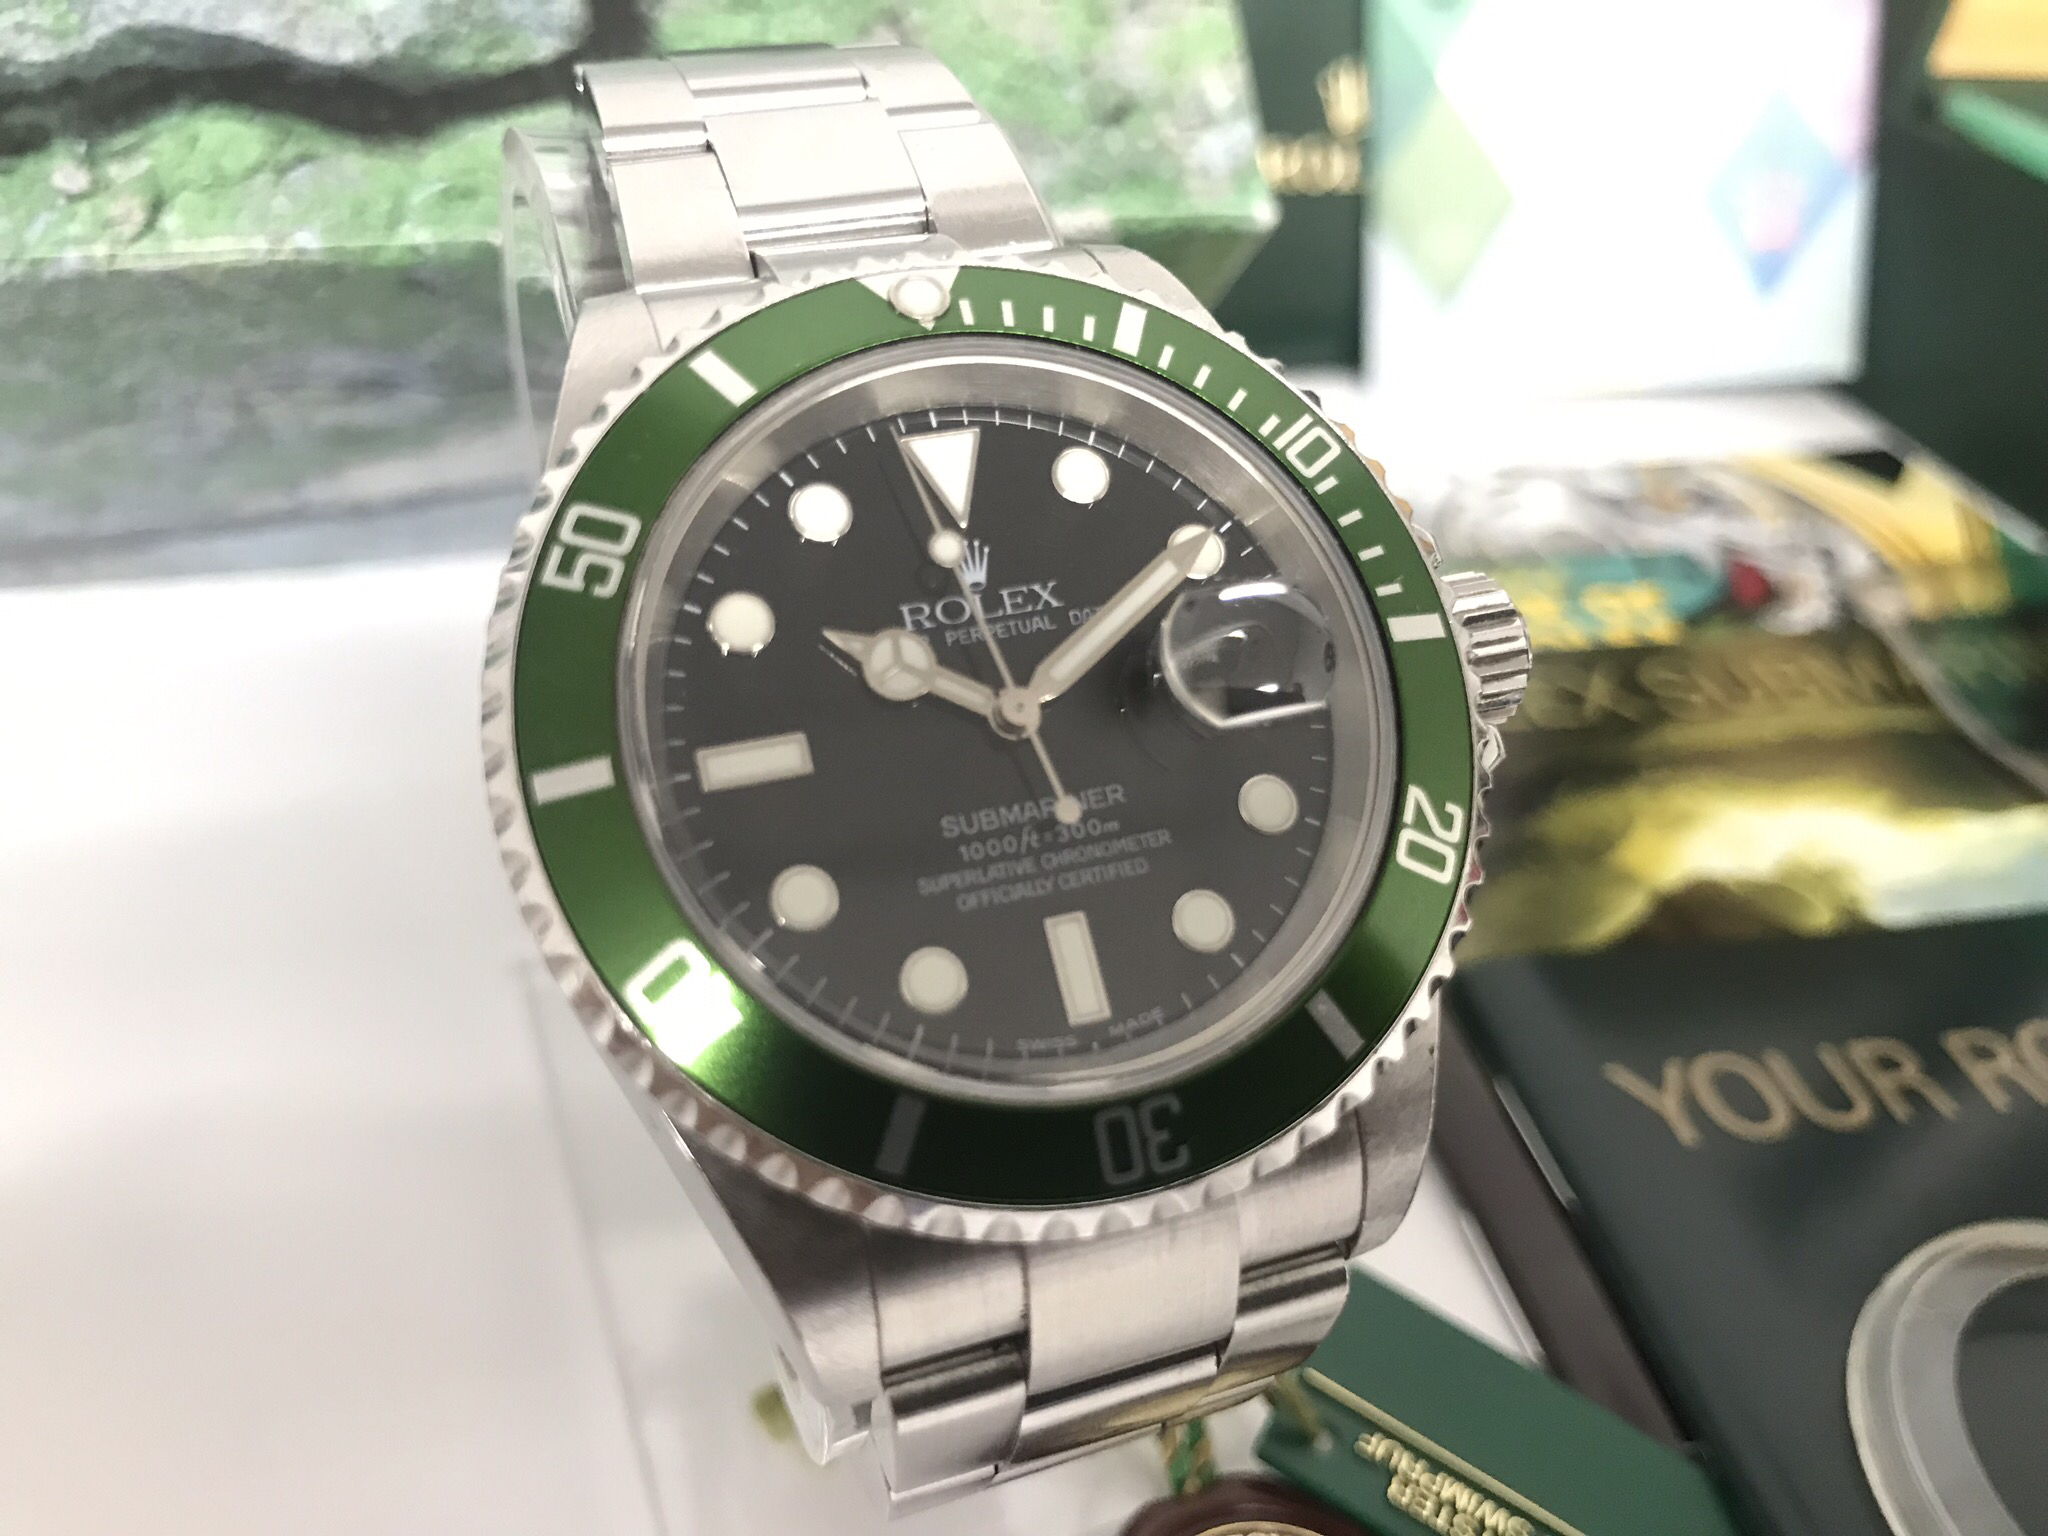 -Sold- 8/5/19 Rolex Submariner 16610LV Flat 4 Anniversary F Serial Number 26375